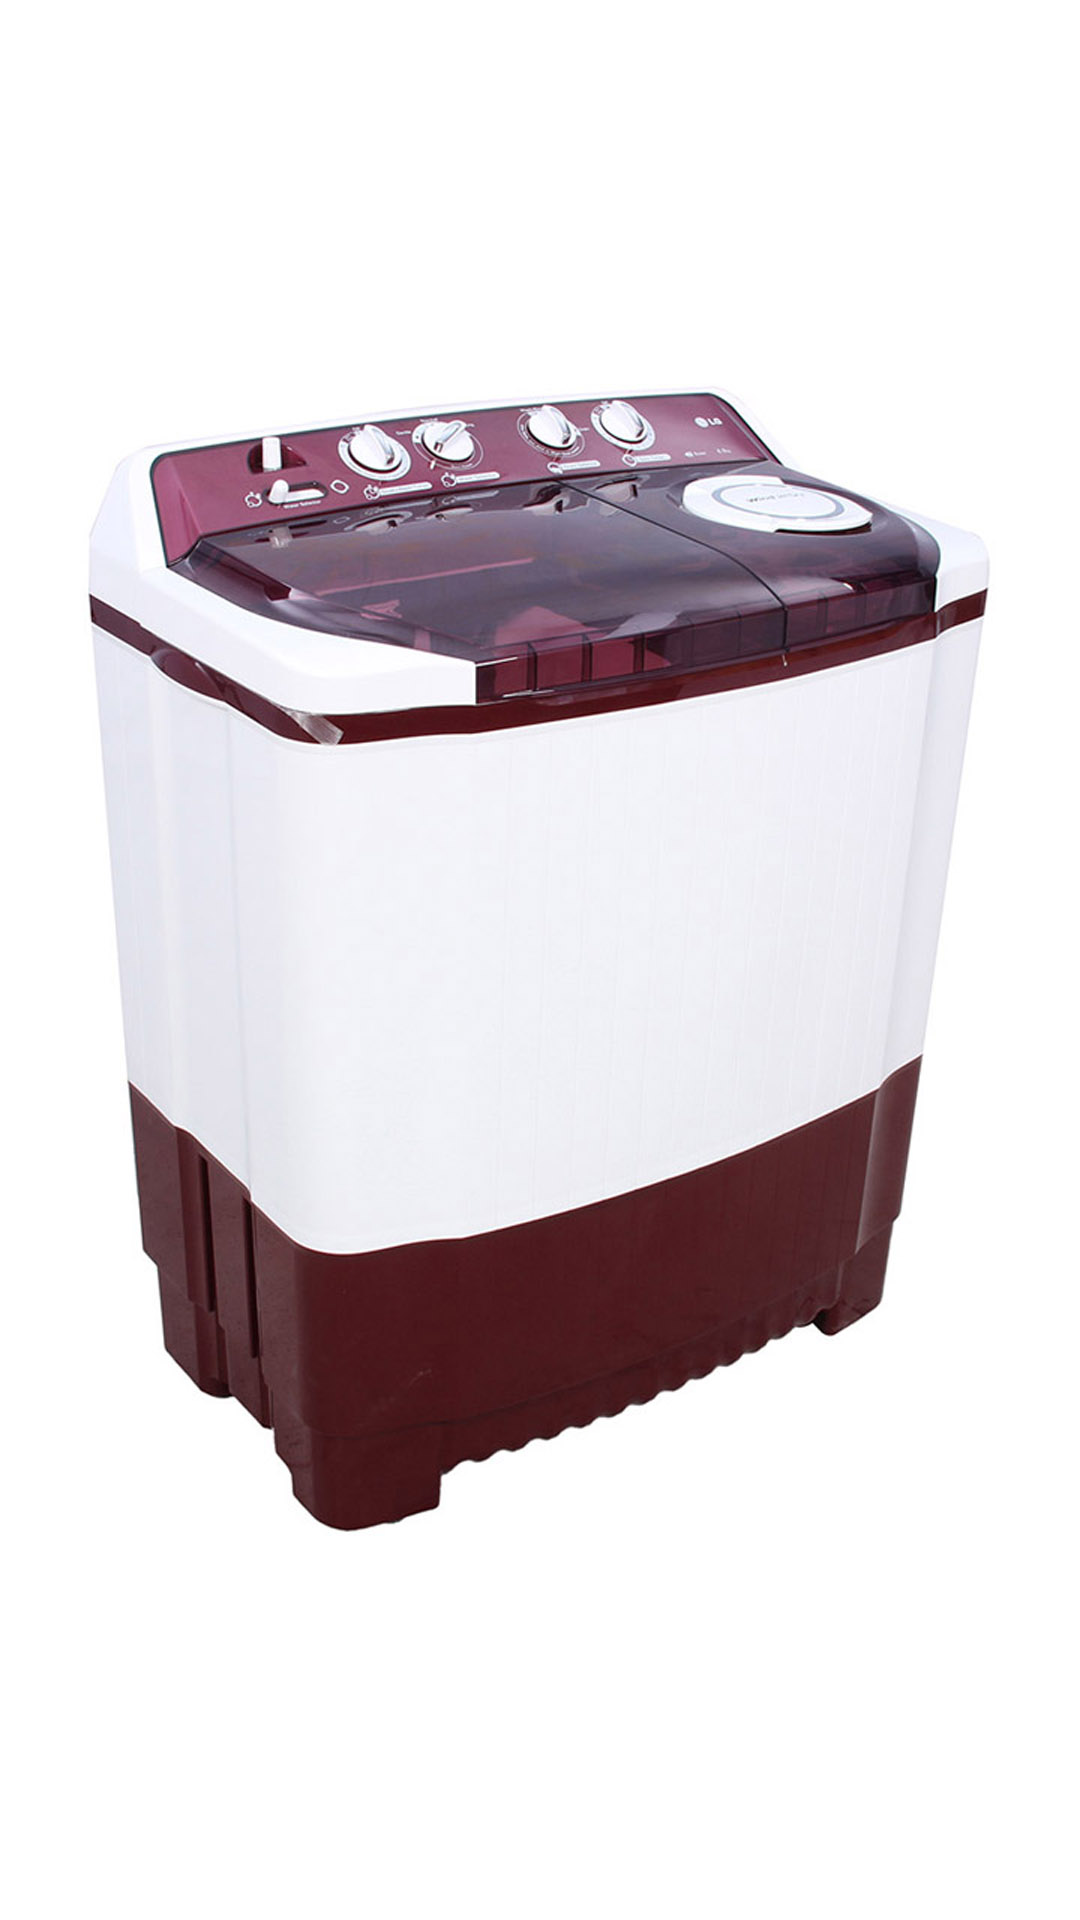 LG P7853R3S Semi Automatic Top Loading 6.8 kg Washing Machine